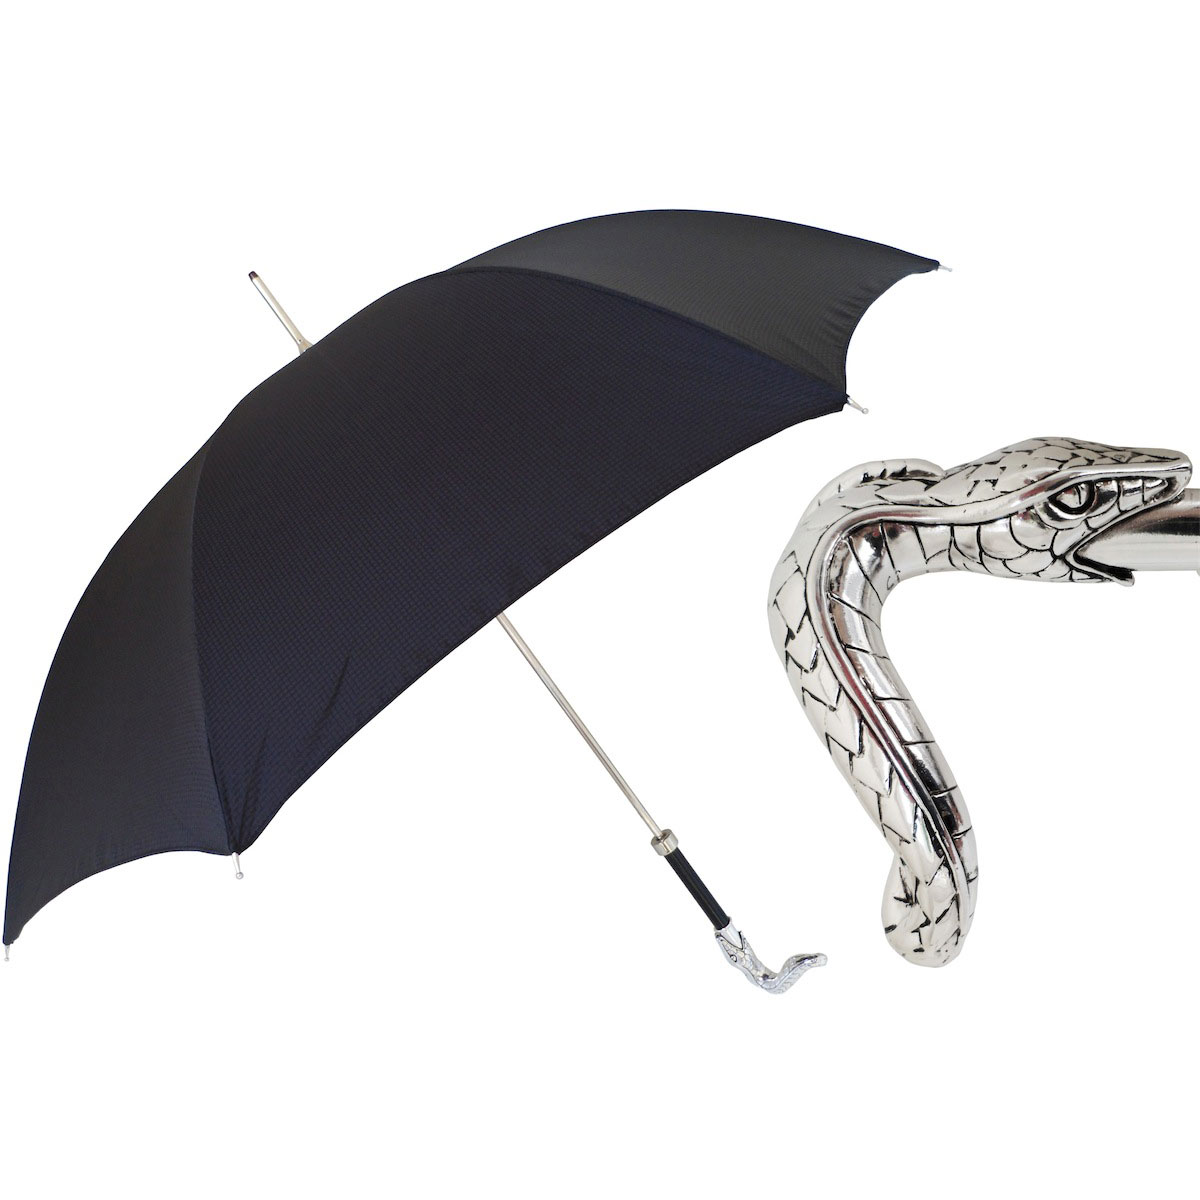 Pasotti Ombrelli Black Men's Umbrella - Brass Snake